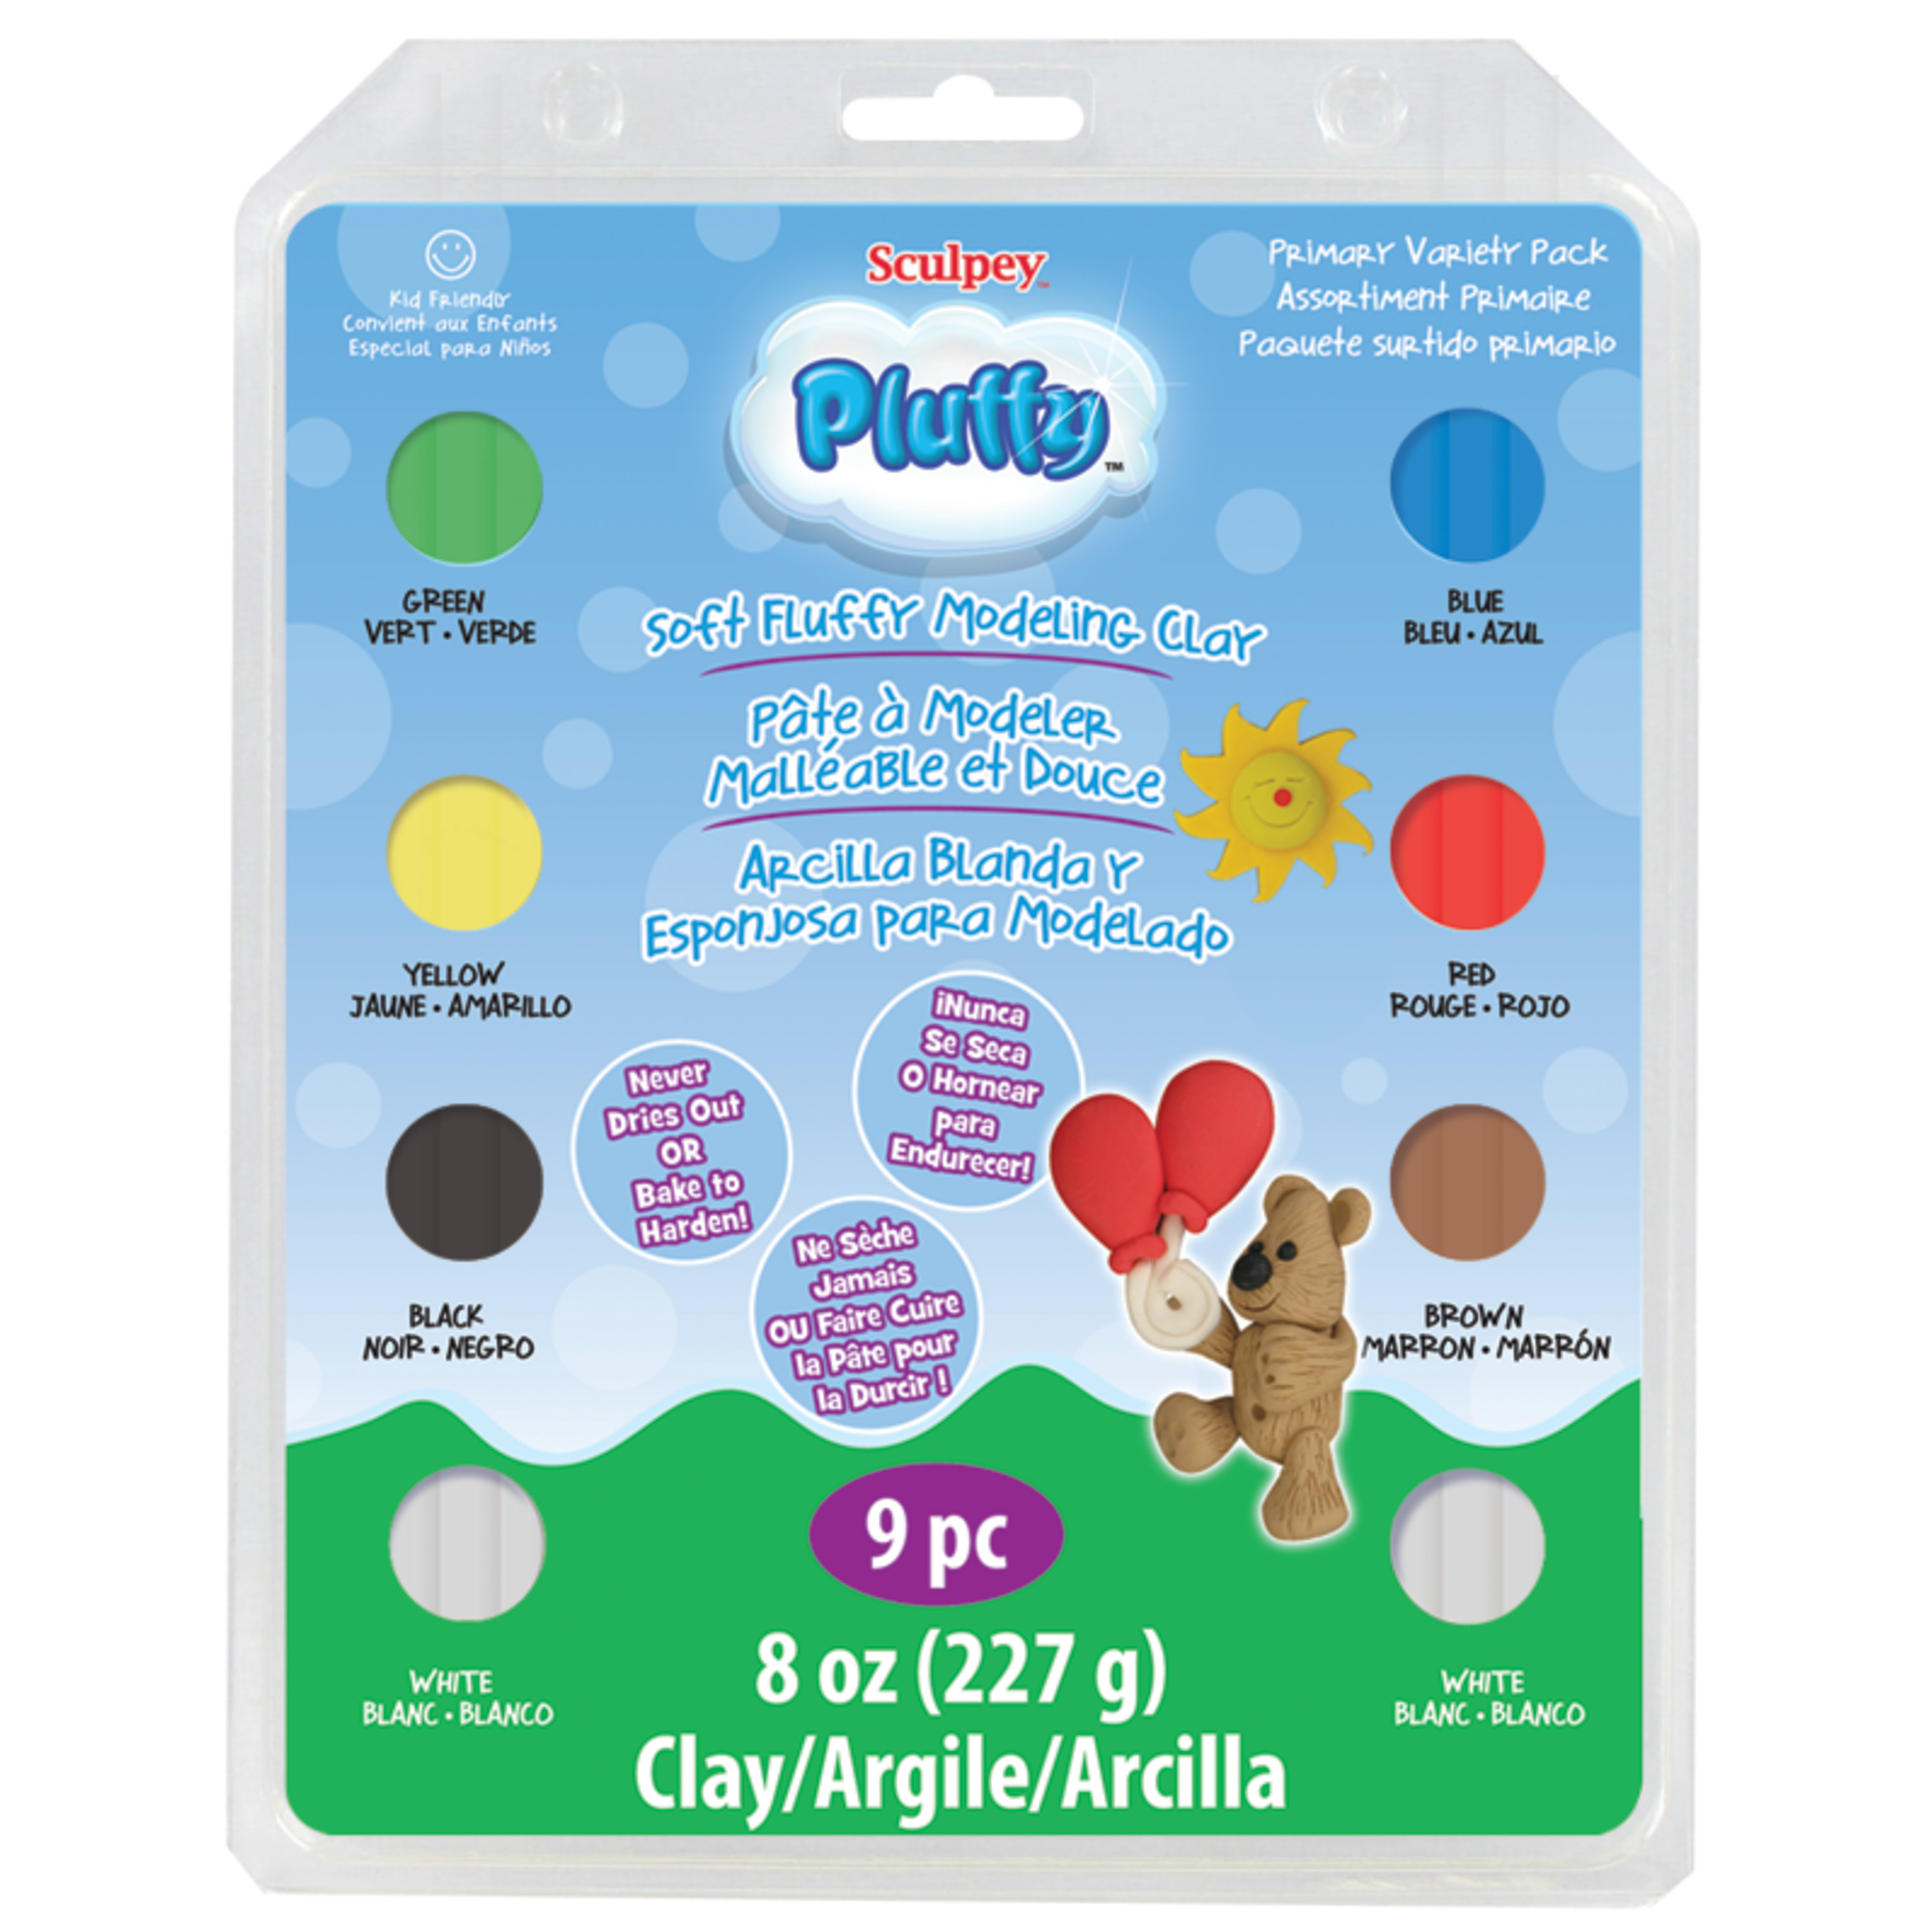 Sculpey Pluffy Variety Pack, Primary